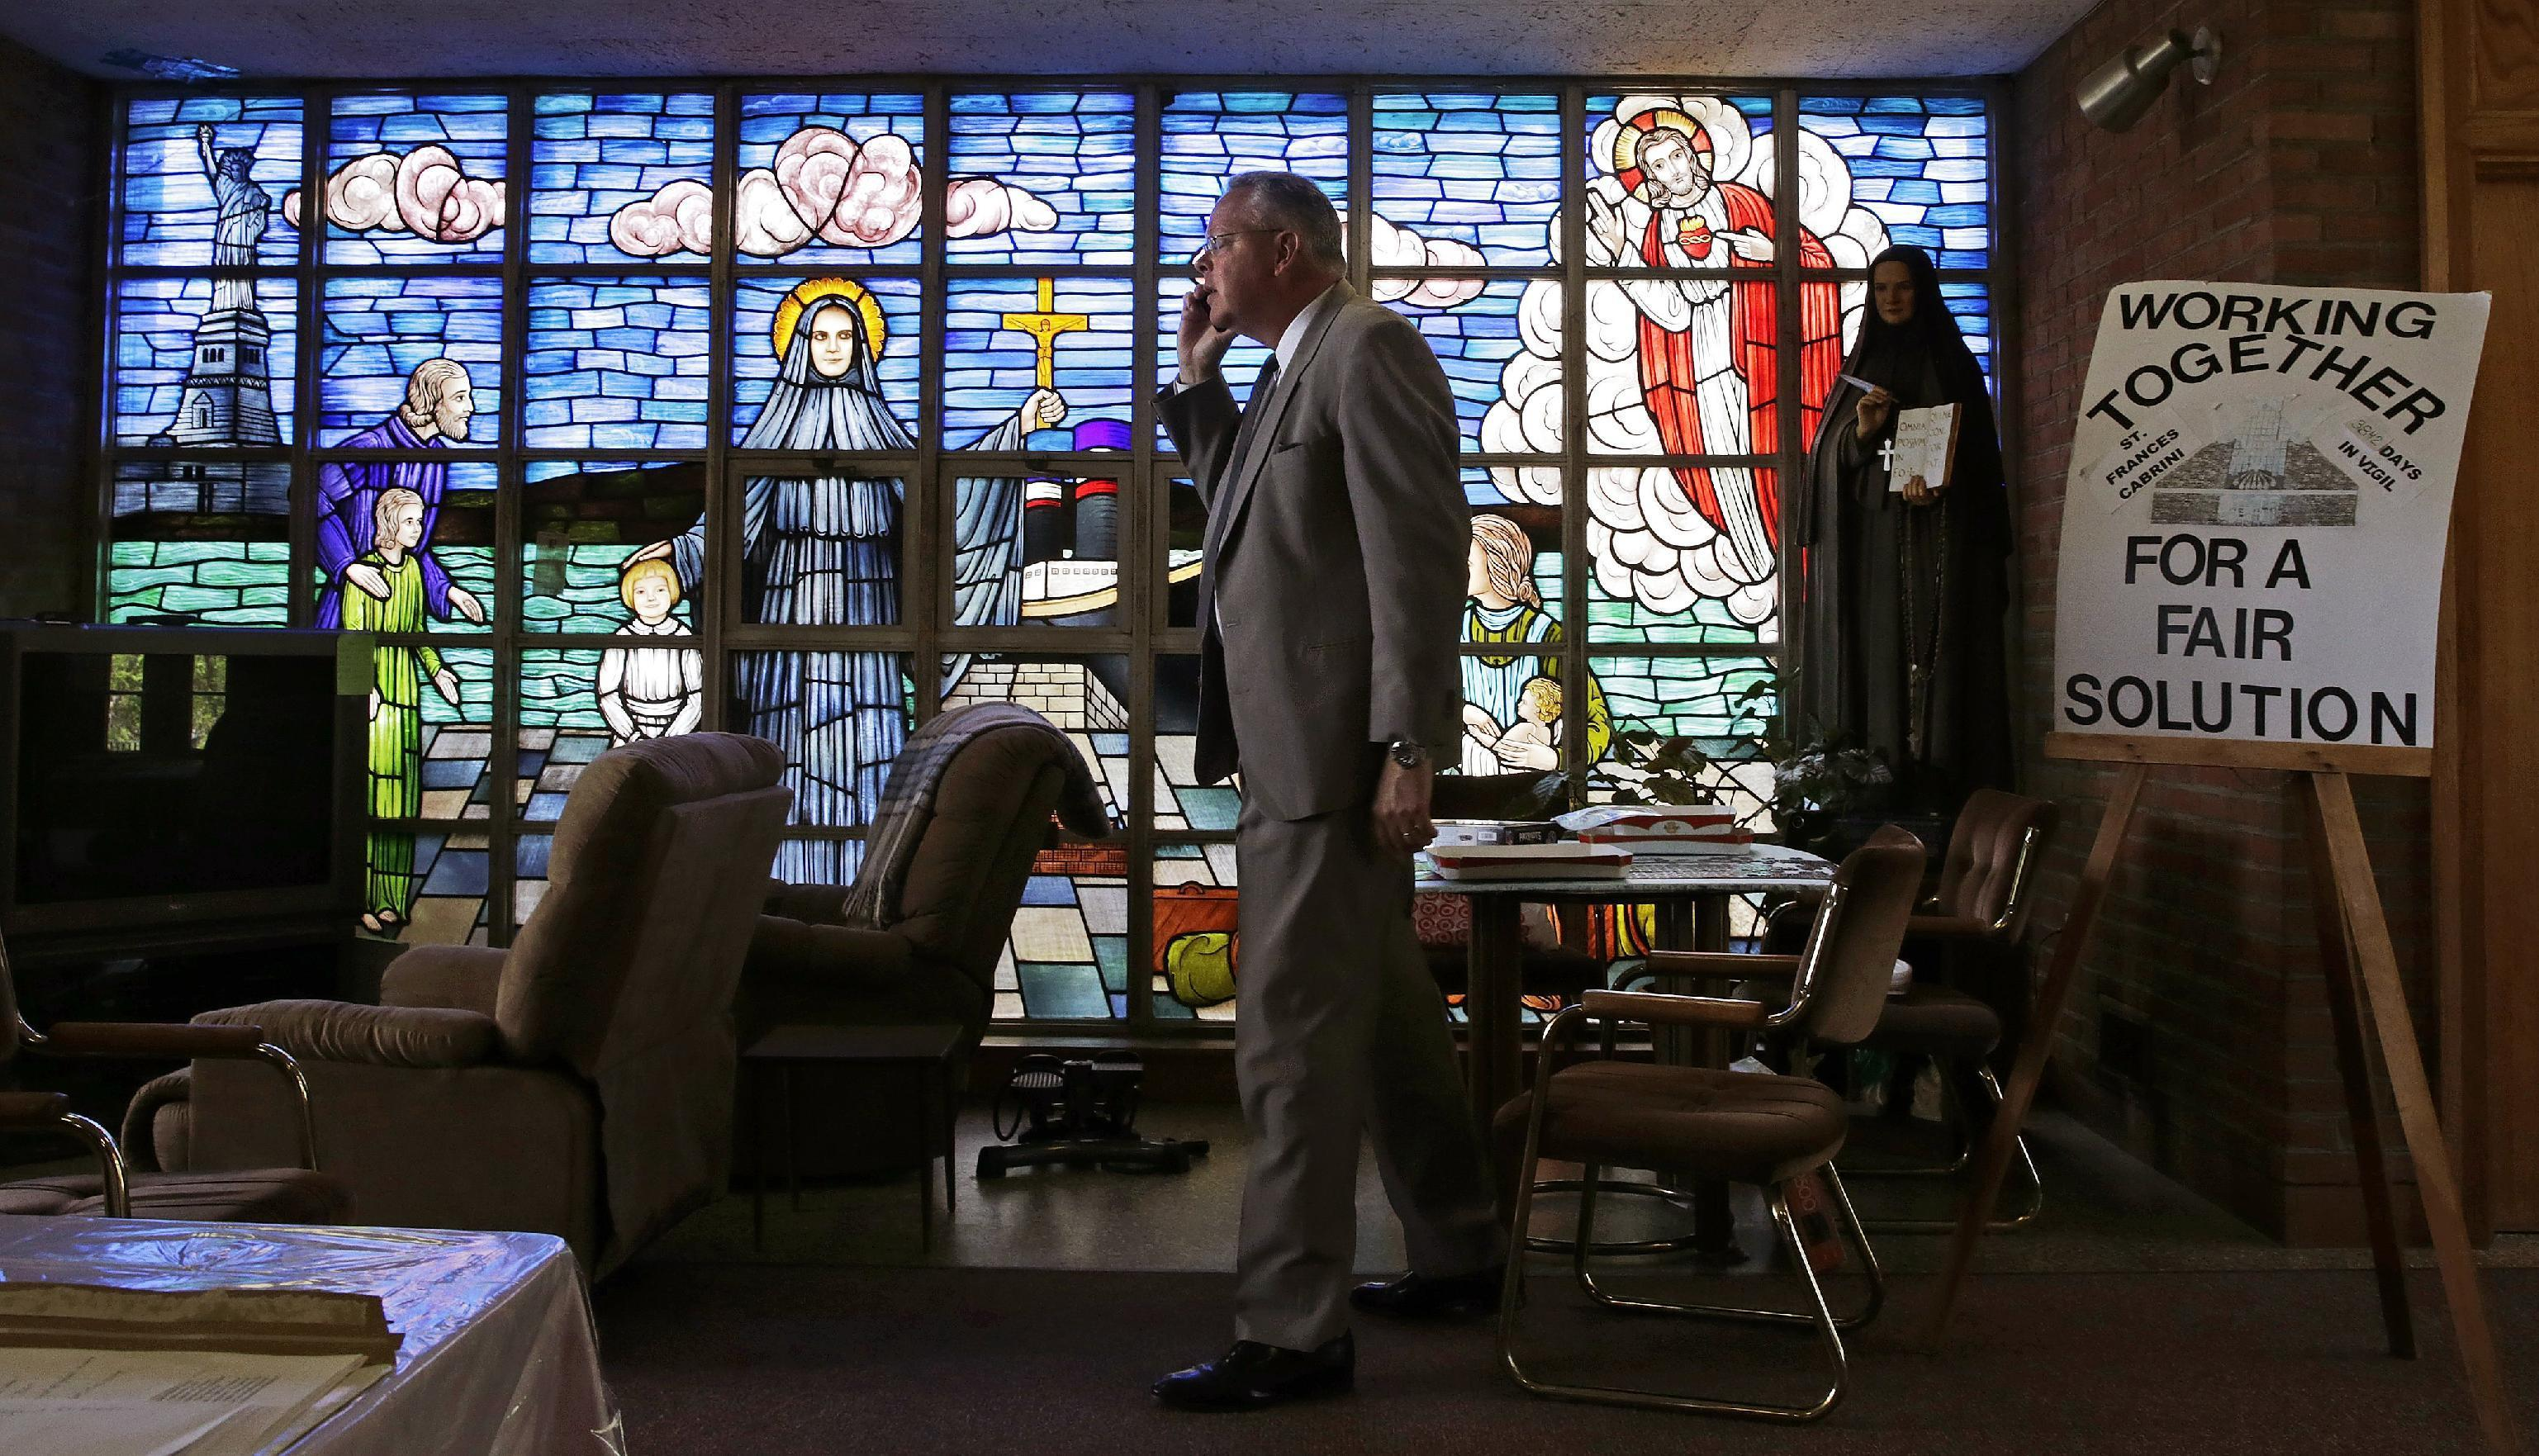 11-year protest in Catholic church faces moment of reckoning